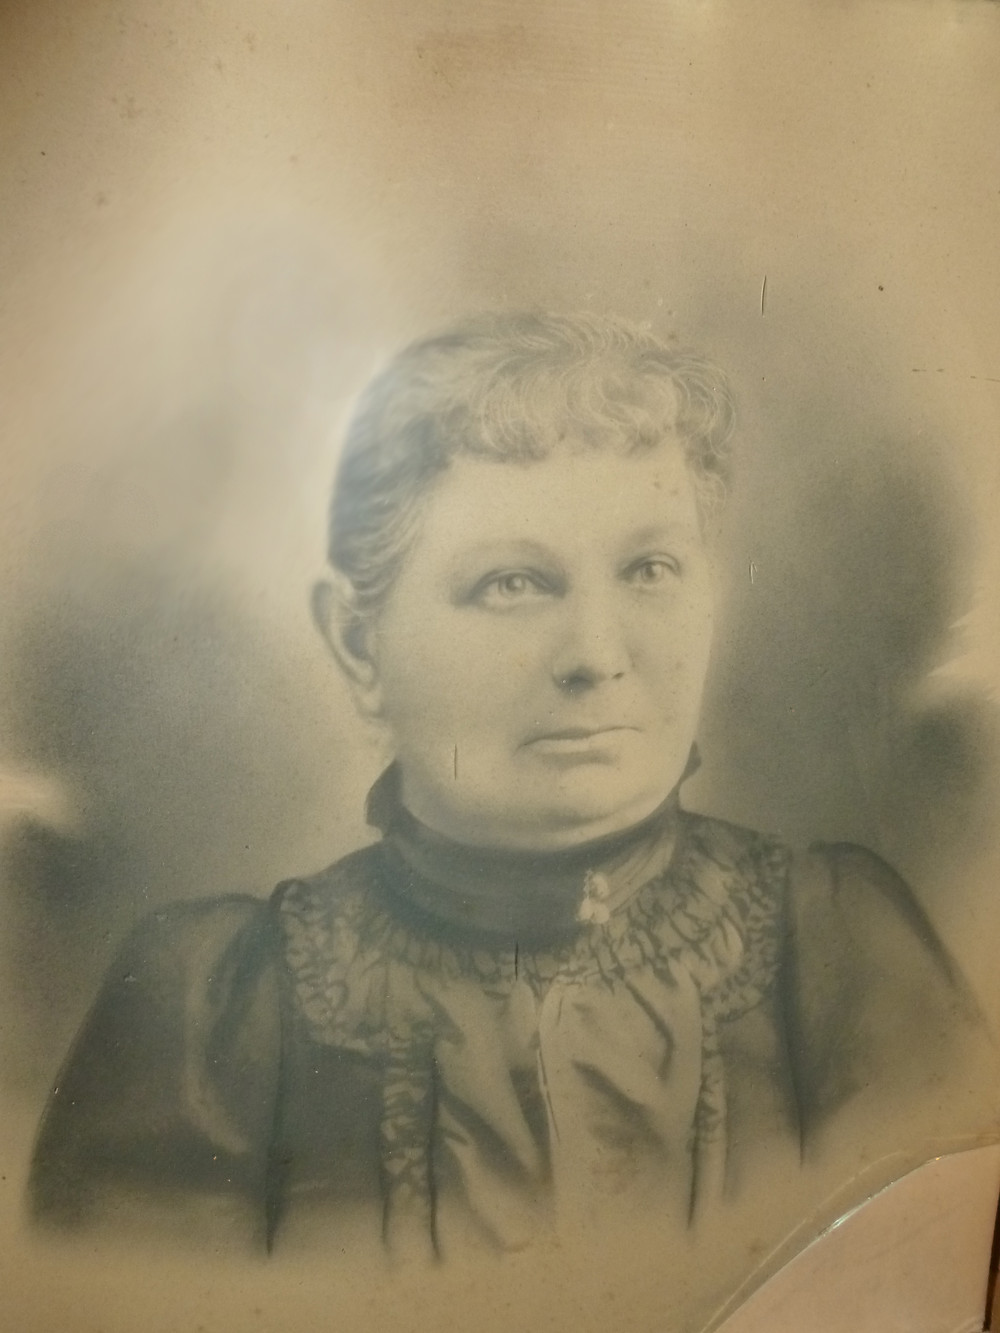 Picture of unknown woman who may possibly be Lydia Cronkhite Fox.